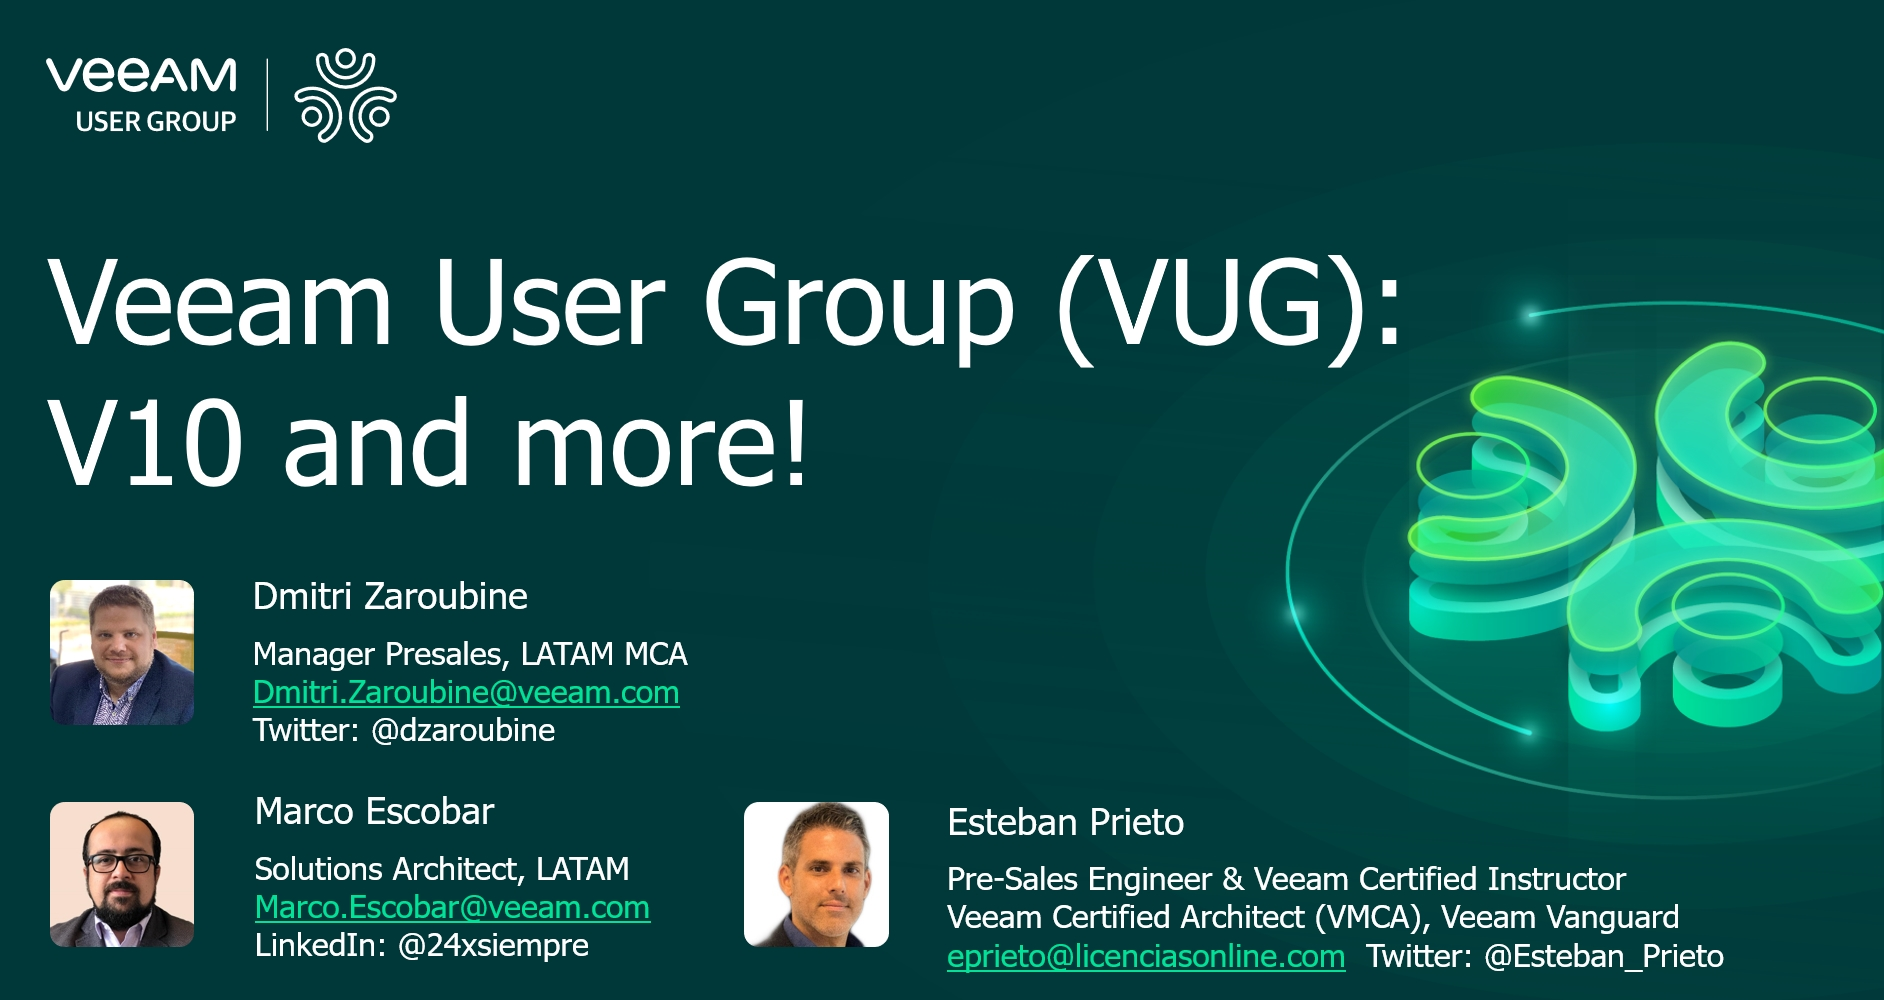 Veeam User Group - ¡Sesión exclusiva Online!